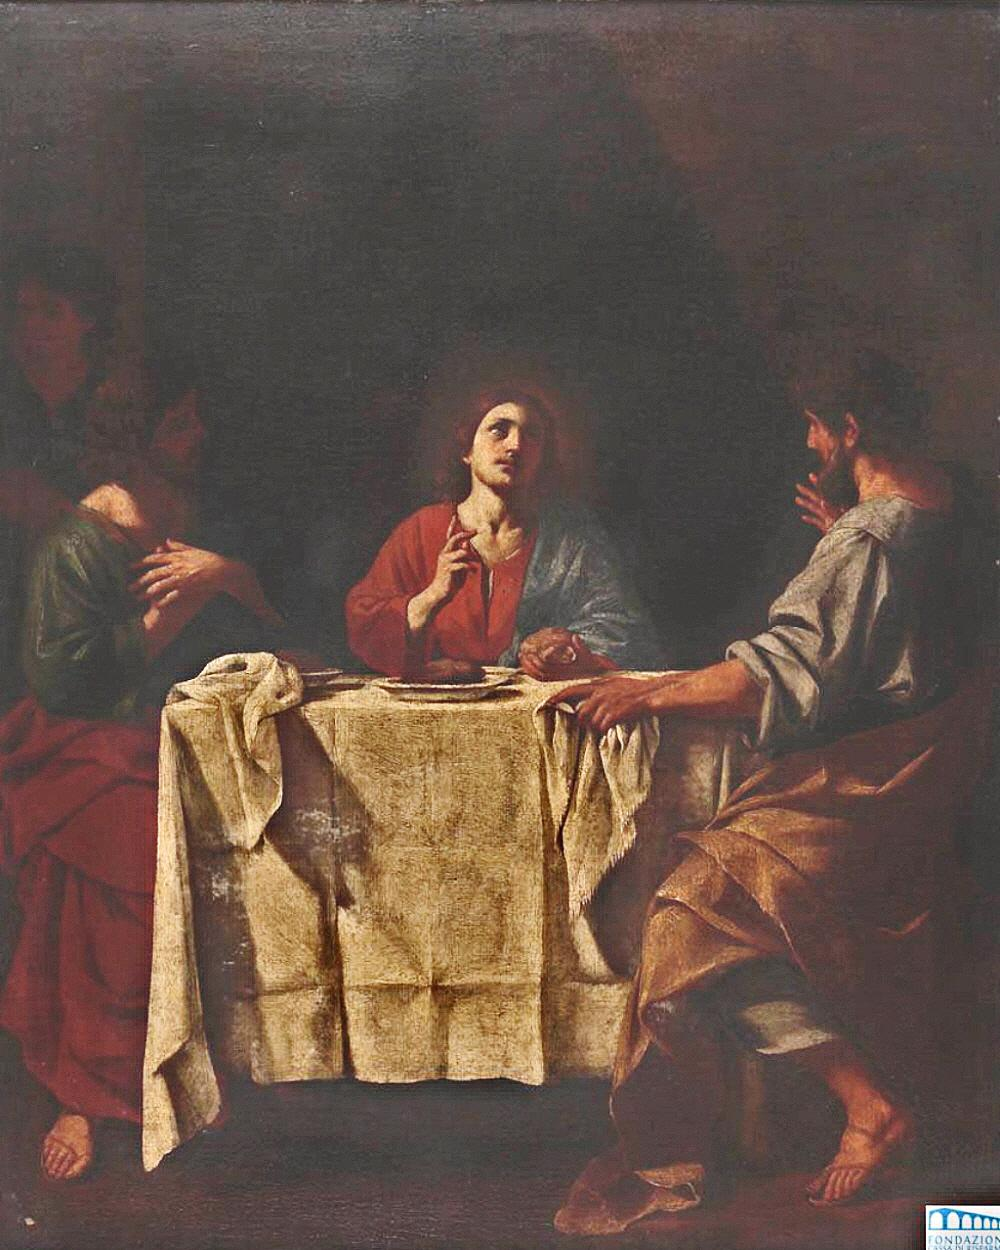 Giacinto Gimignani. The Supper at Emmaus. circa 1678